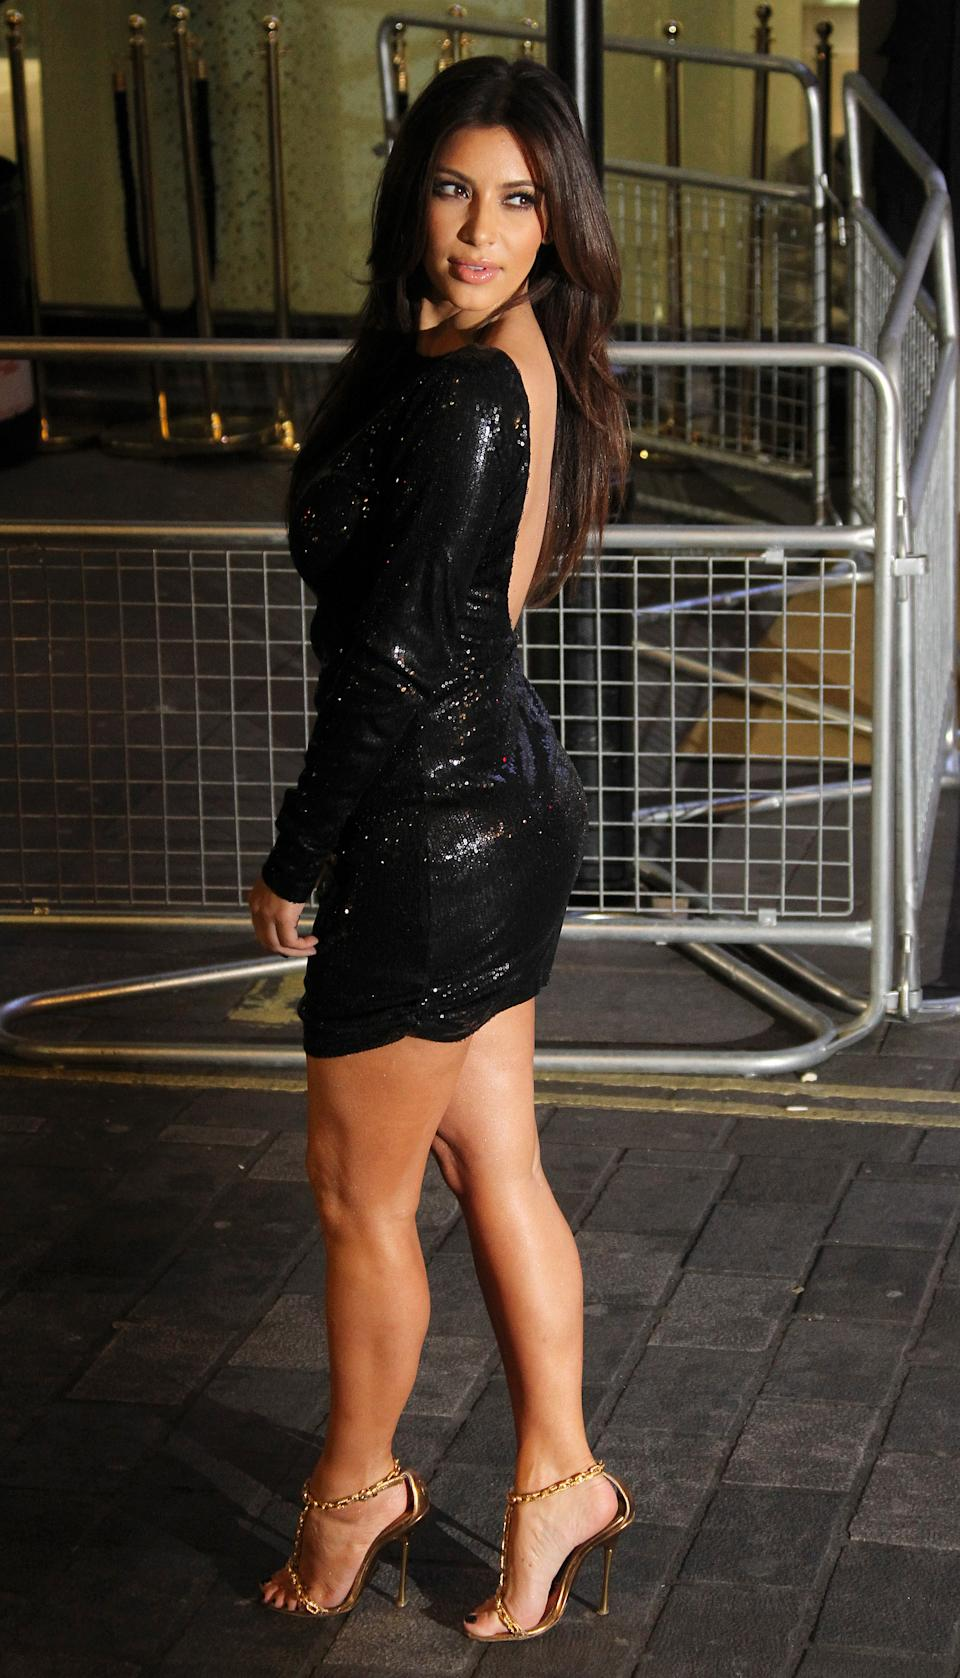 Kim Kardashian arrives for their Kardashian Kollection UK Launch at Acqua Club in central London, Thursday, Nov. 8, 2012. (Photo by Joel Ryan/Invision/AP)